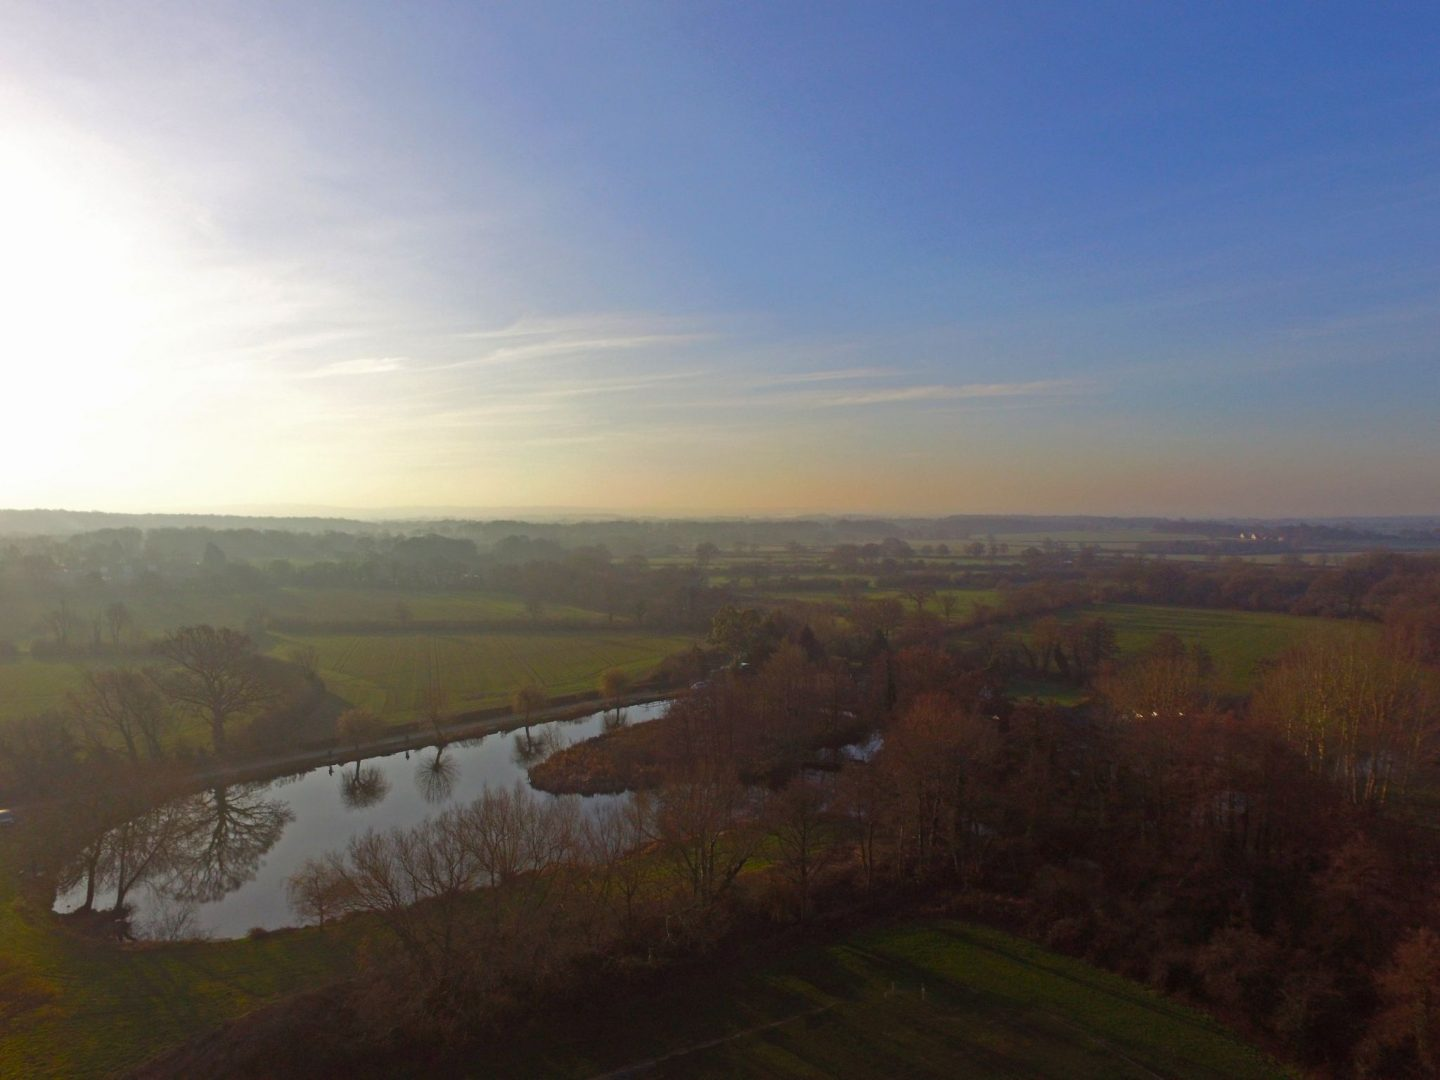 Surrey, Sussex, early morning photograph, reflections, drone photograph, aerial photography, dadbloguk, uk dad blogger